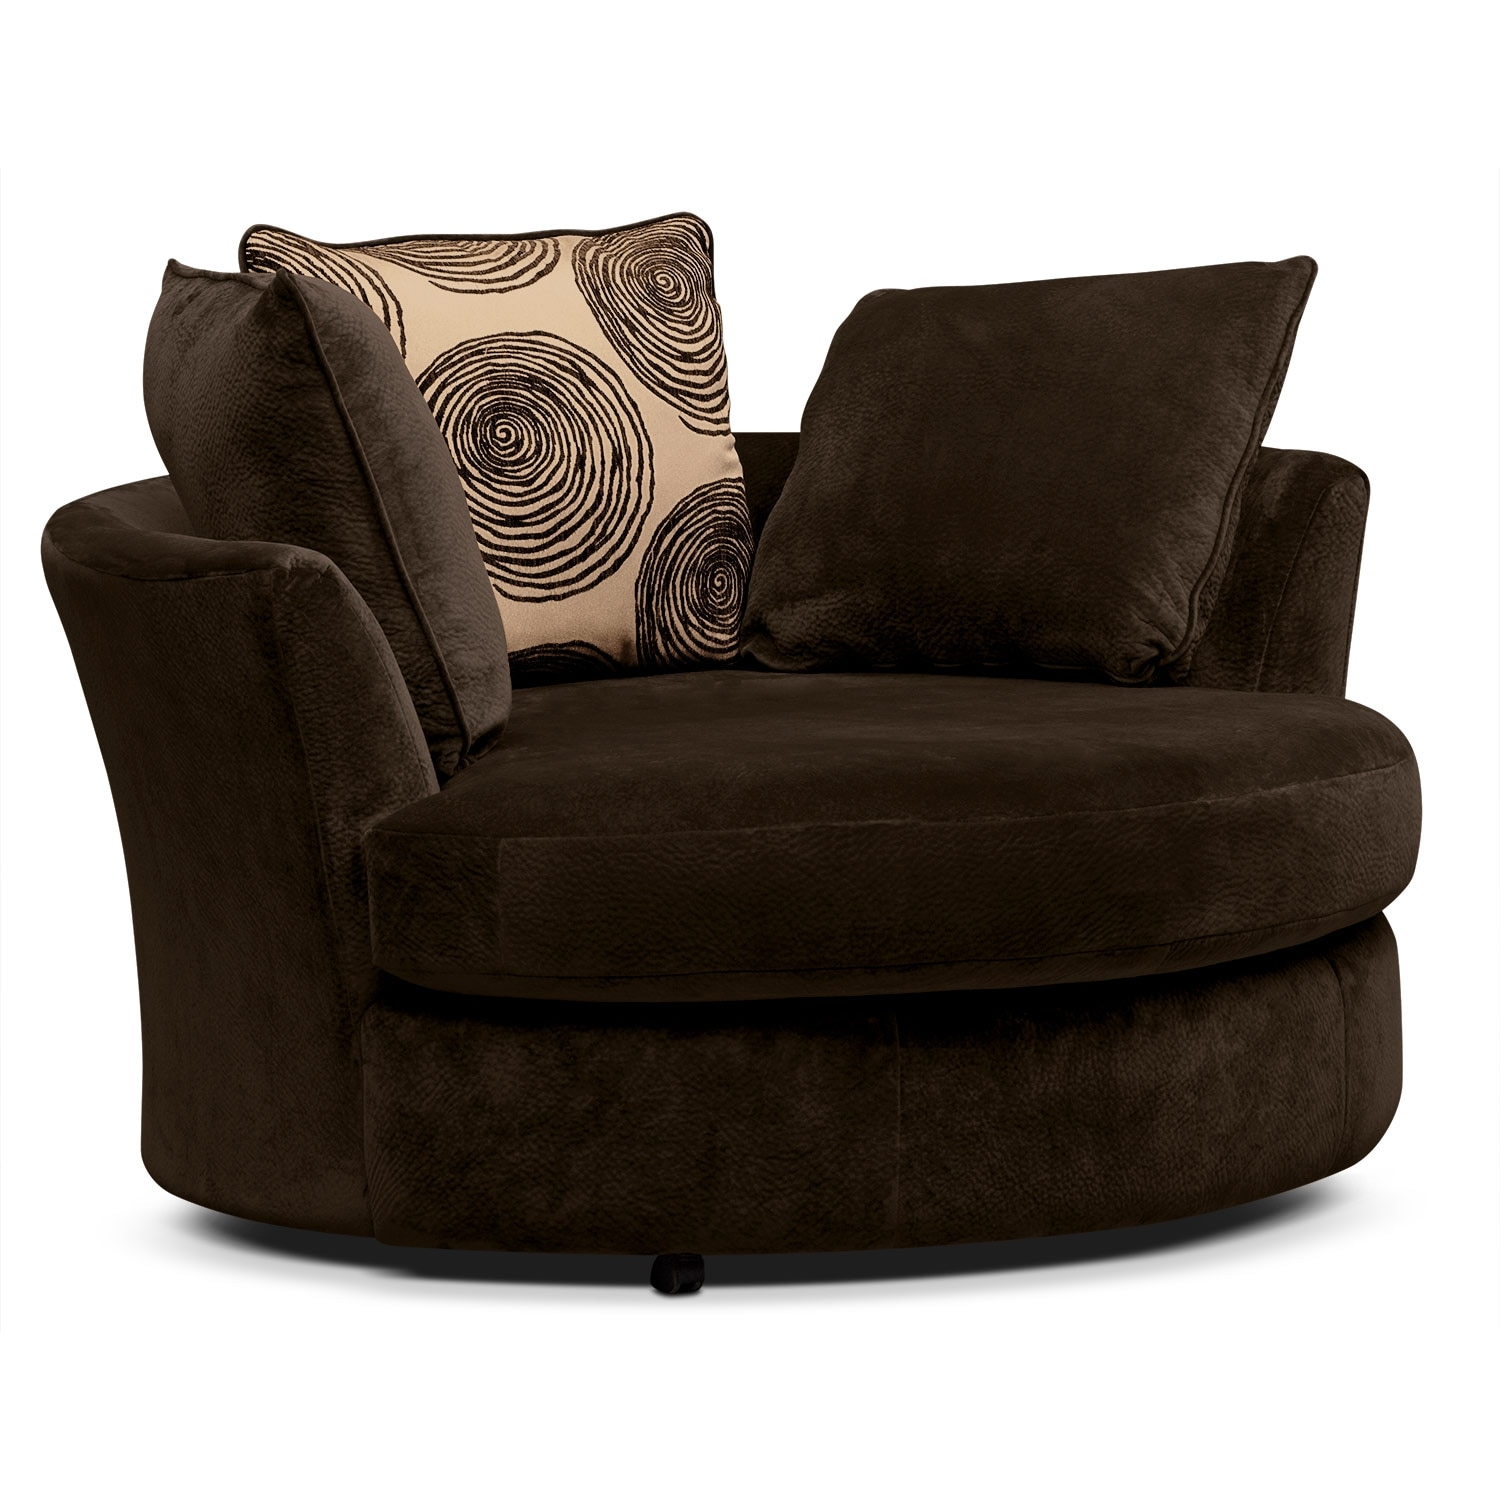 [Cordoba Chocolate Swivel Chair]